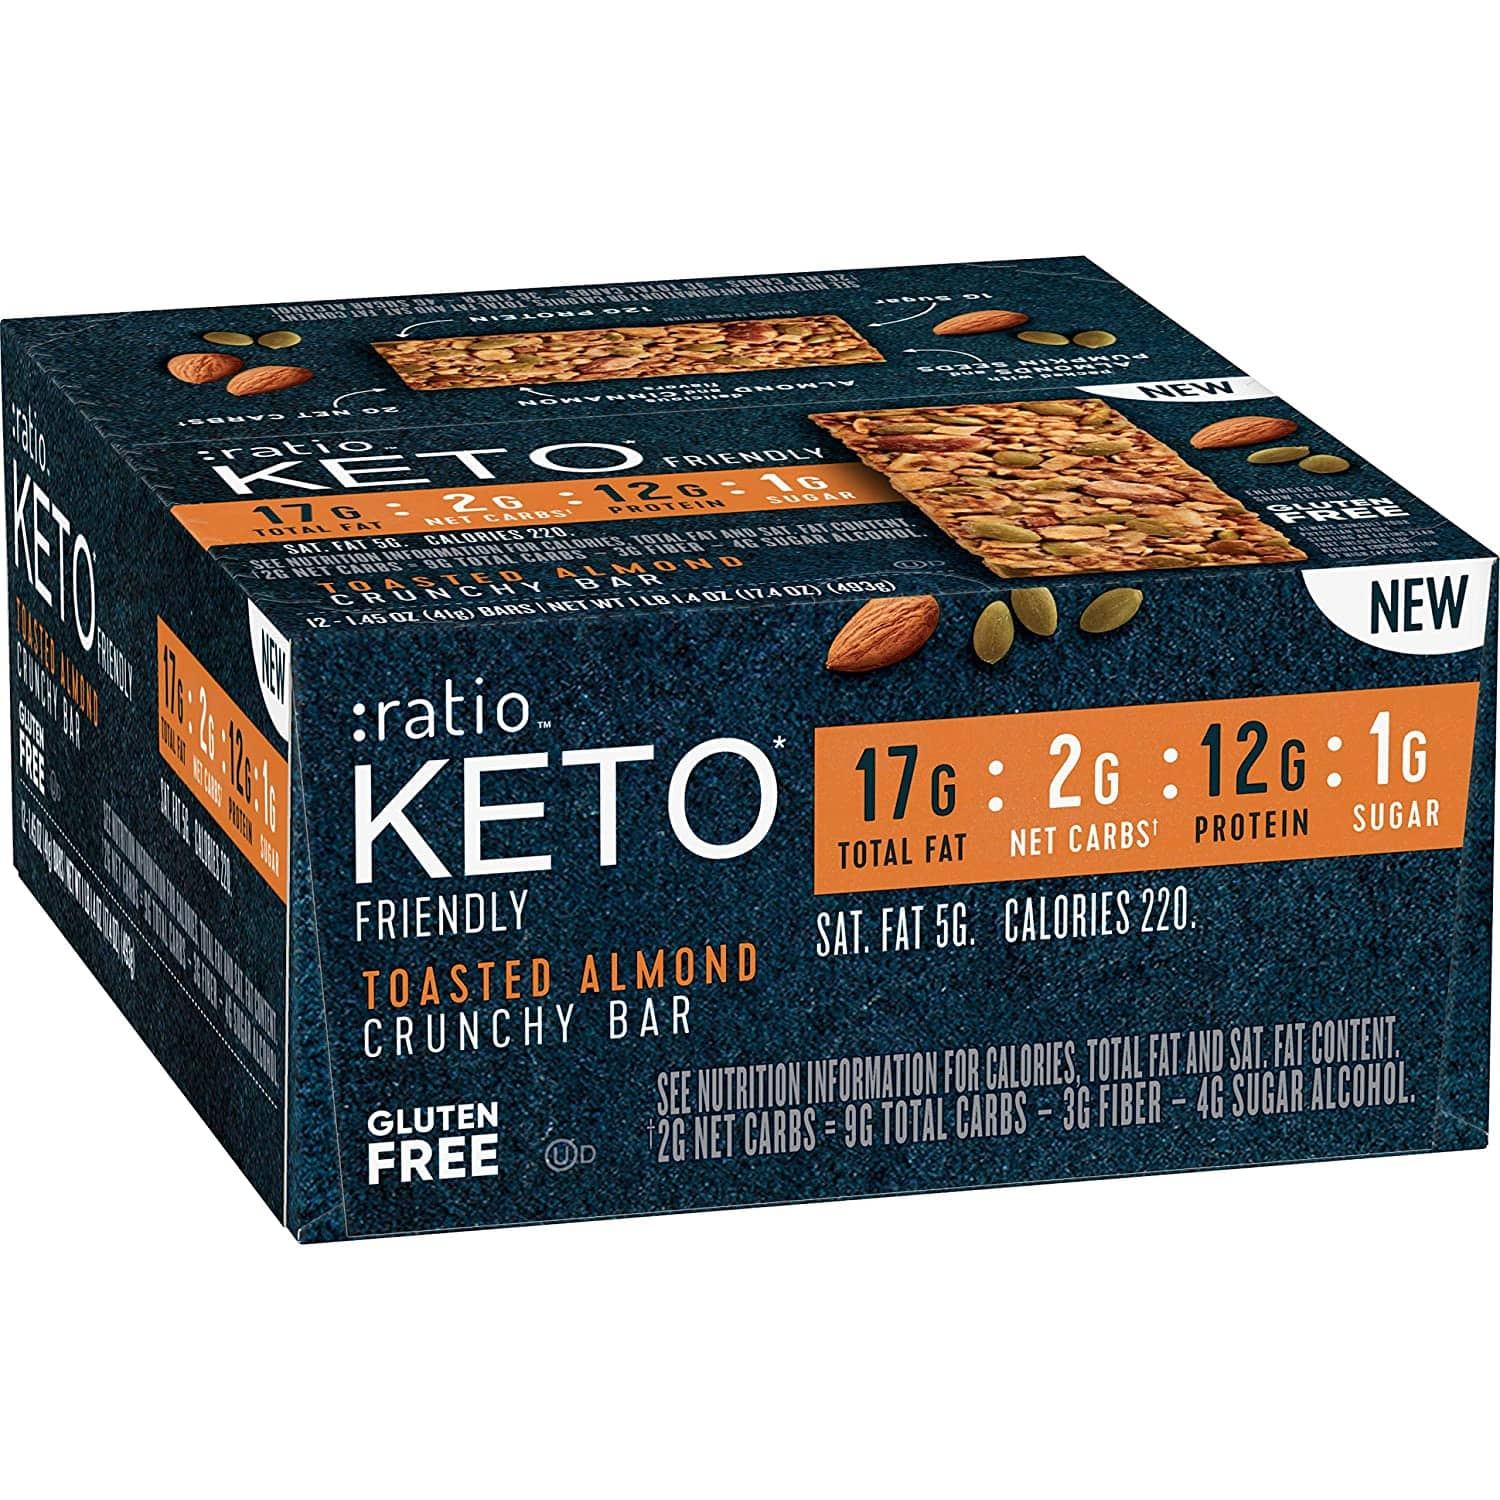 12ct. :ratio KETO friendly Protein Bar - Lemon Almond or Toasted Almond Crunchy Bar $19.43 or Less AC w/s&s